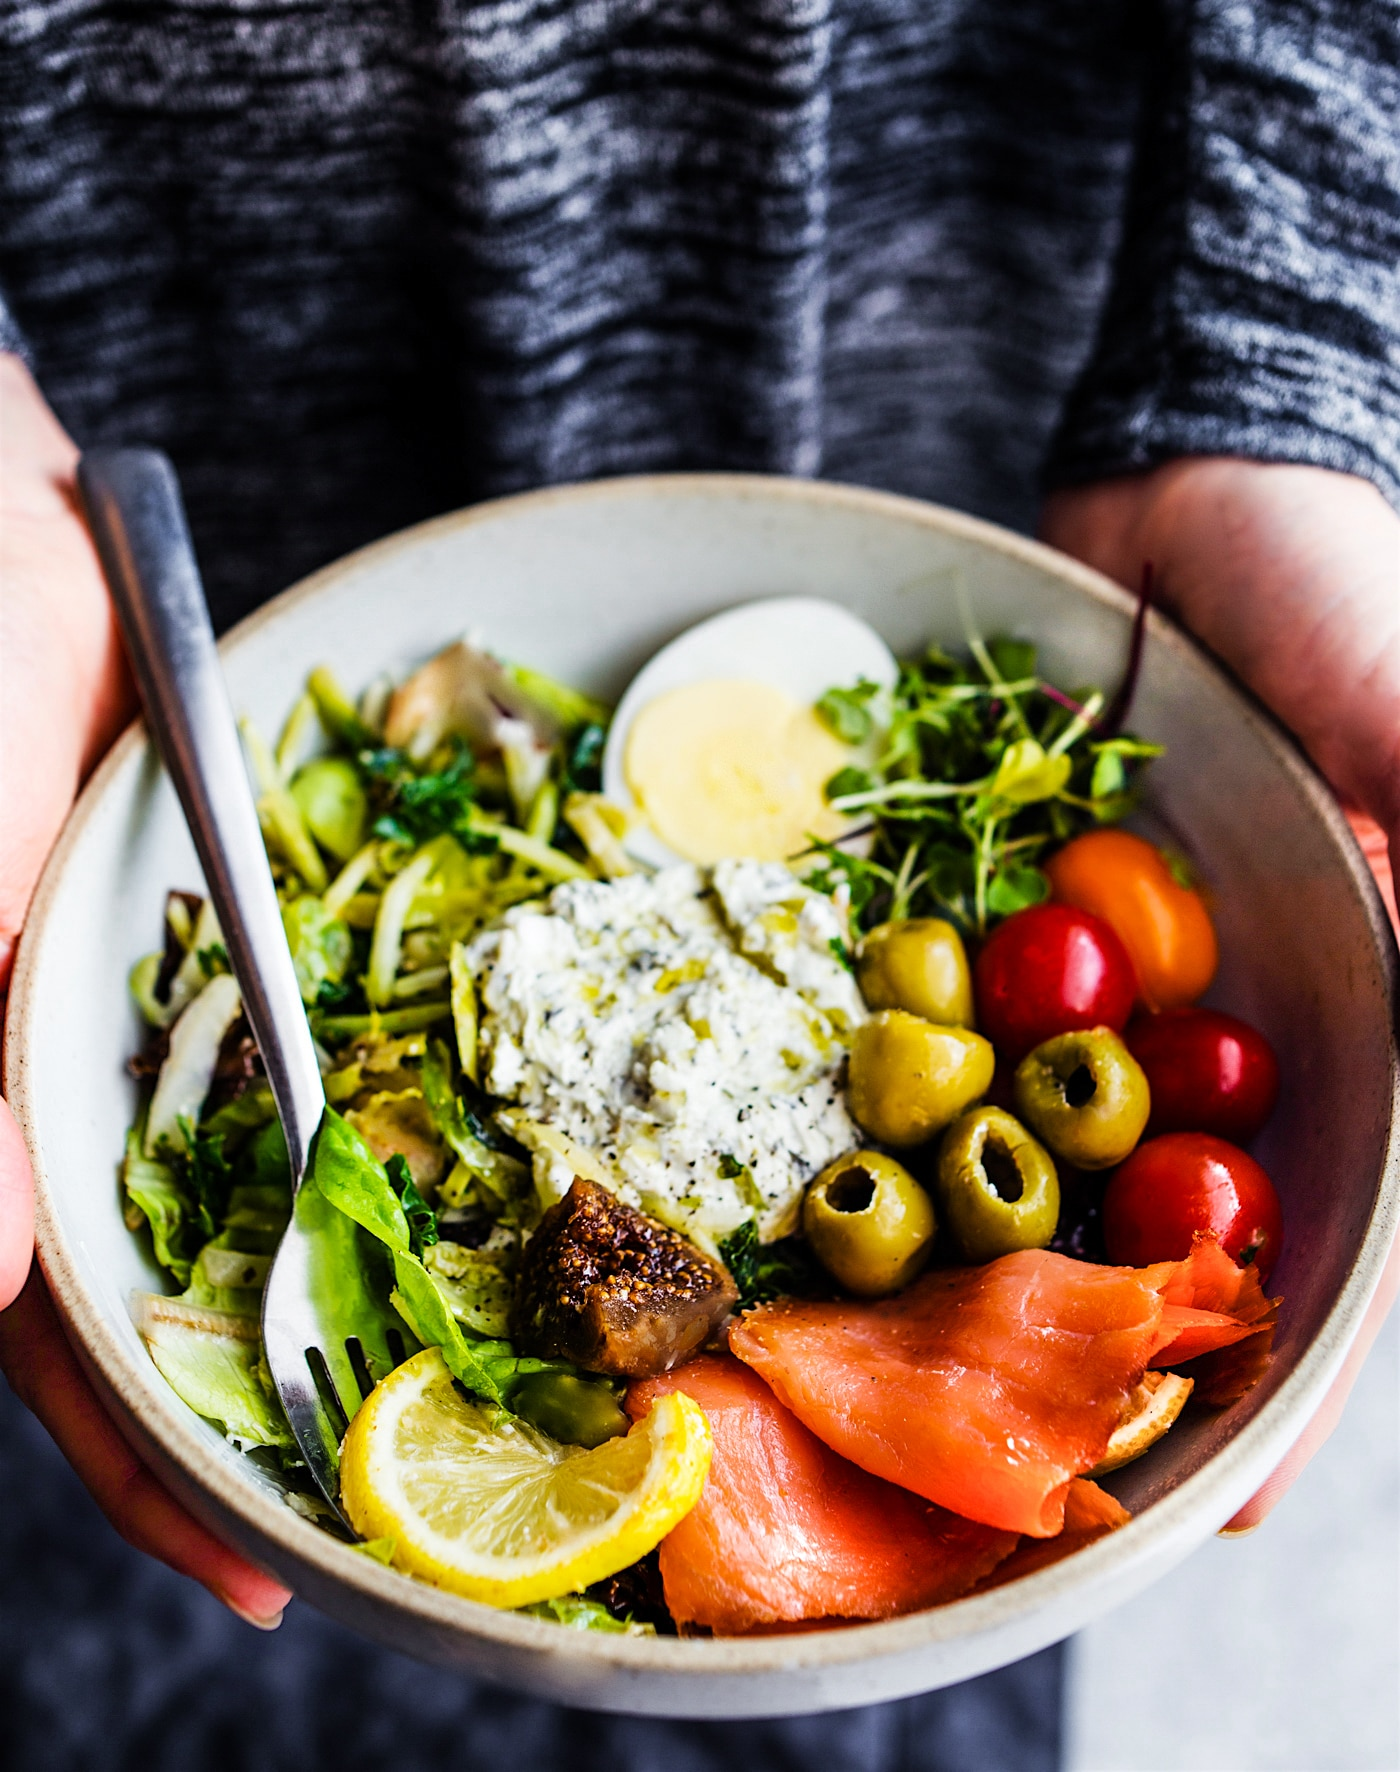 large bowl filled with warm greens salad with fish, hard boiled egg slices, olives and goat cheese